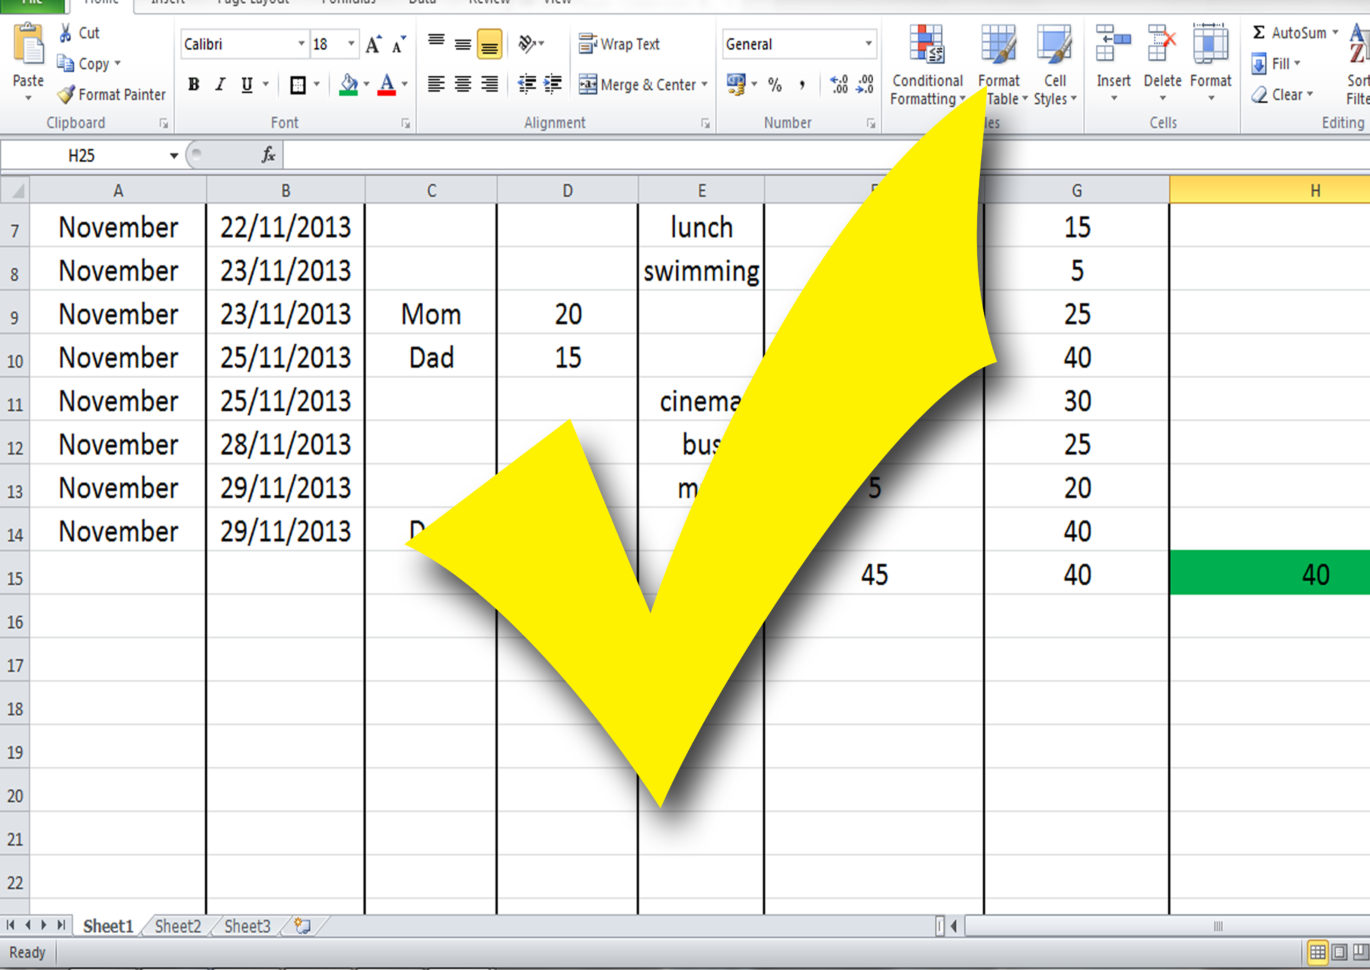 How To Keep A Budget Spreadsheet Pertaining To How To Build A Budget Spreadsheet Teenagers: 13 Steps